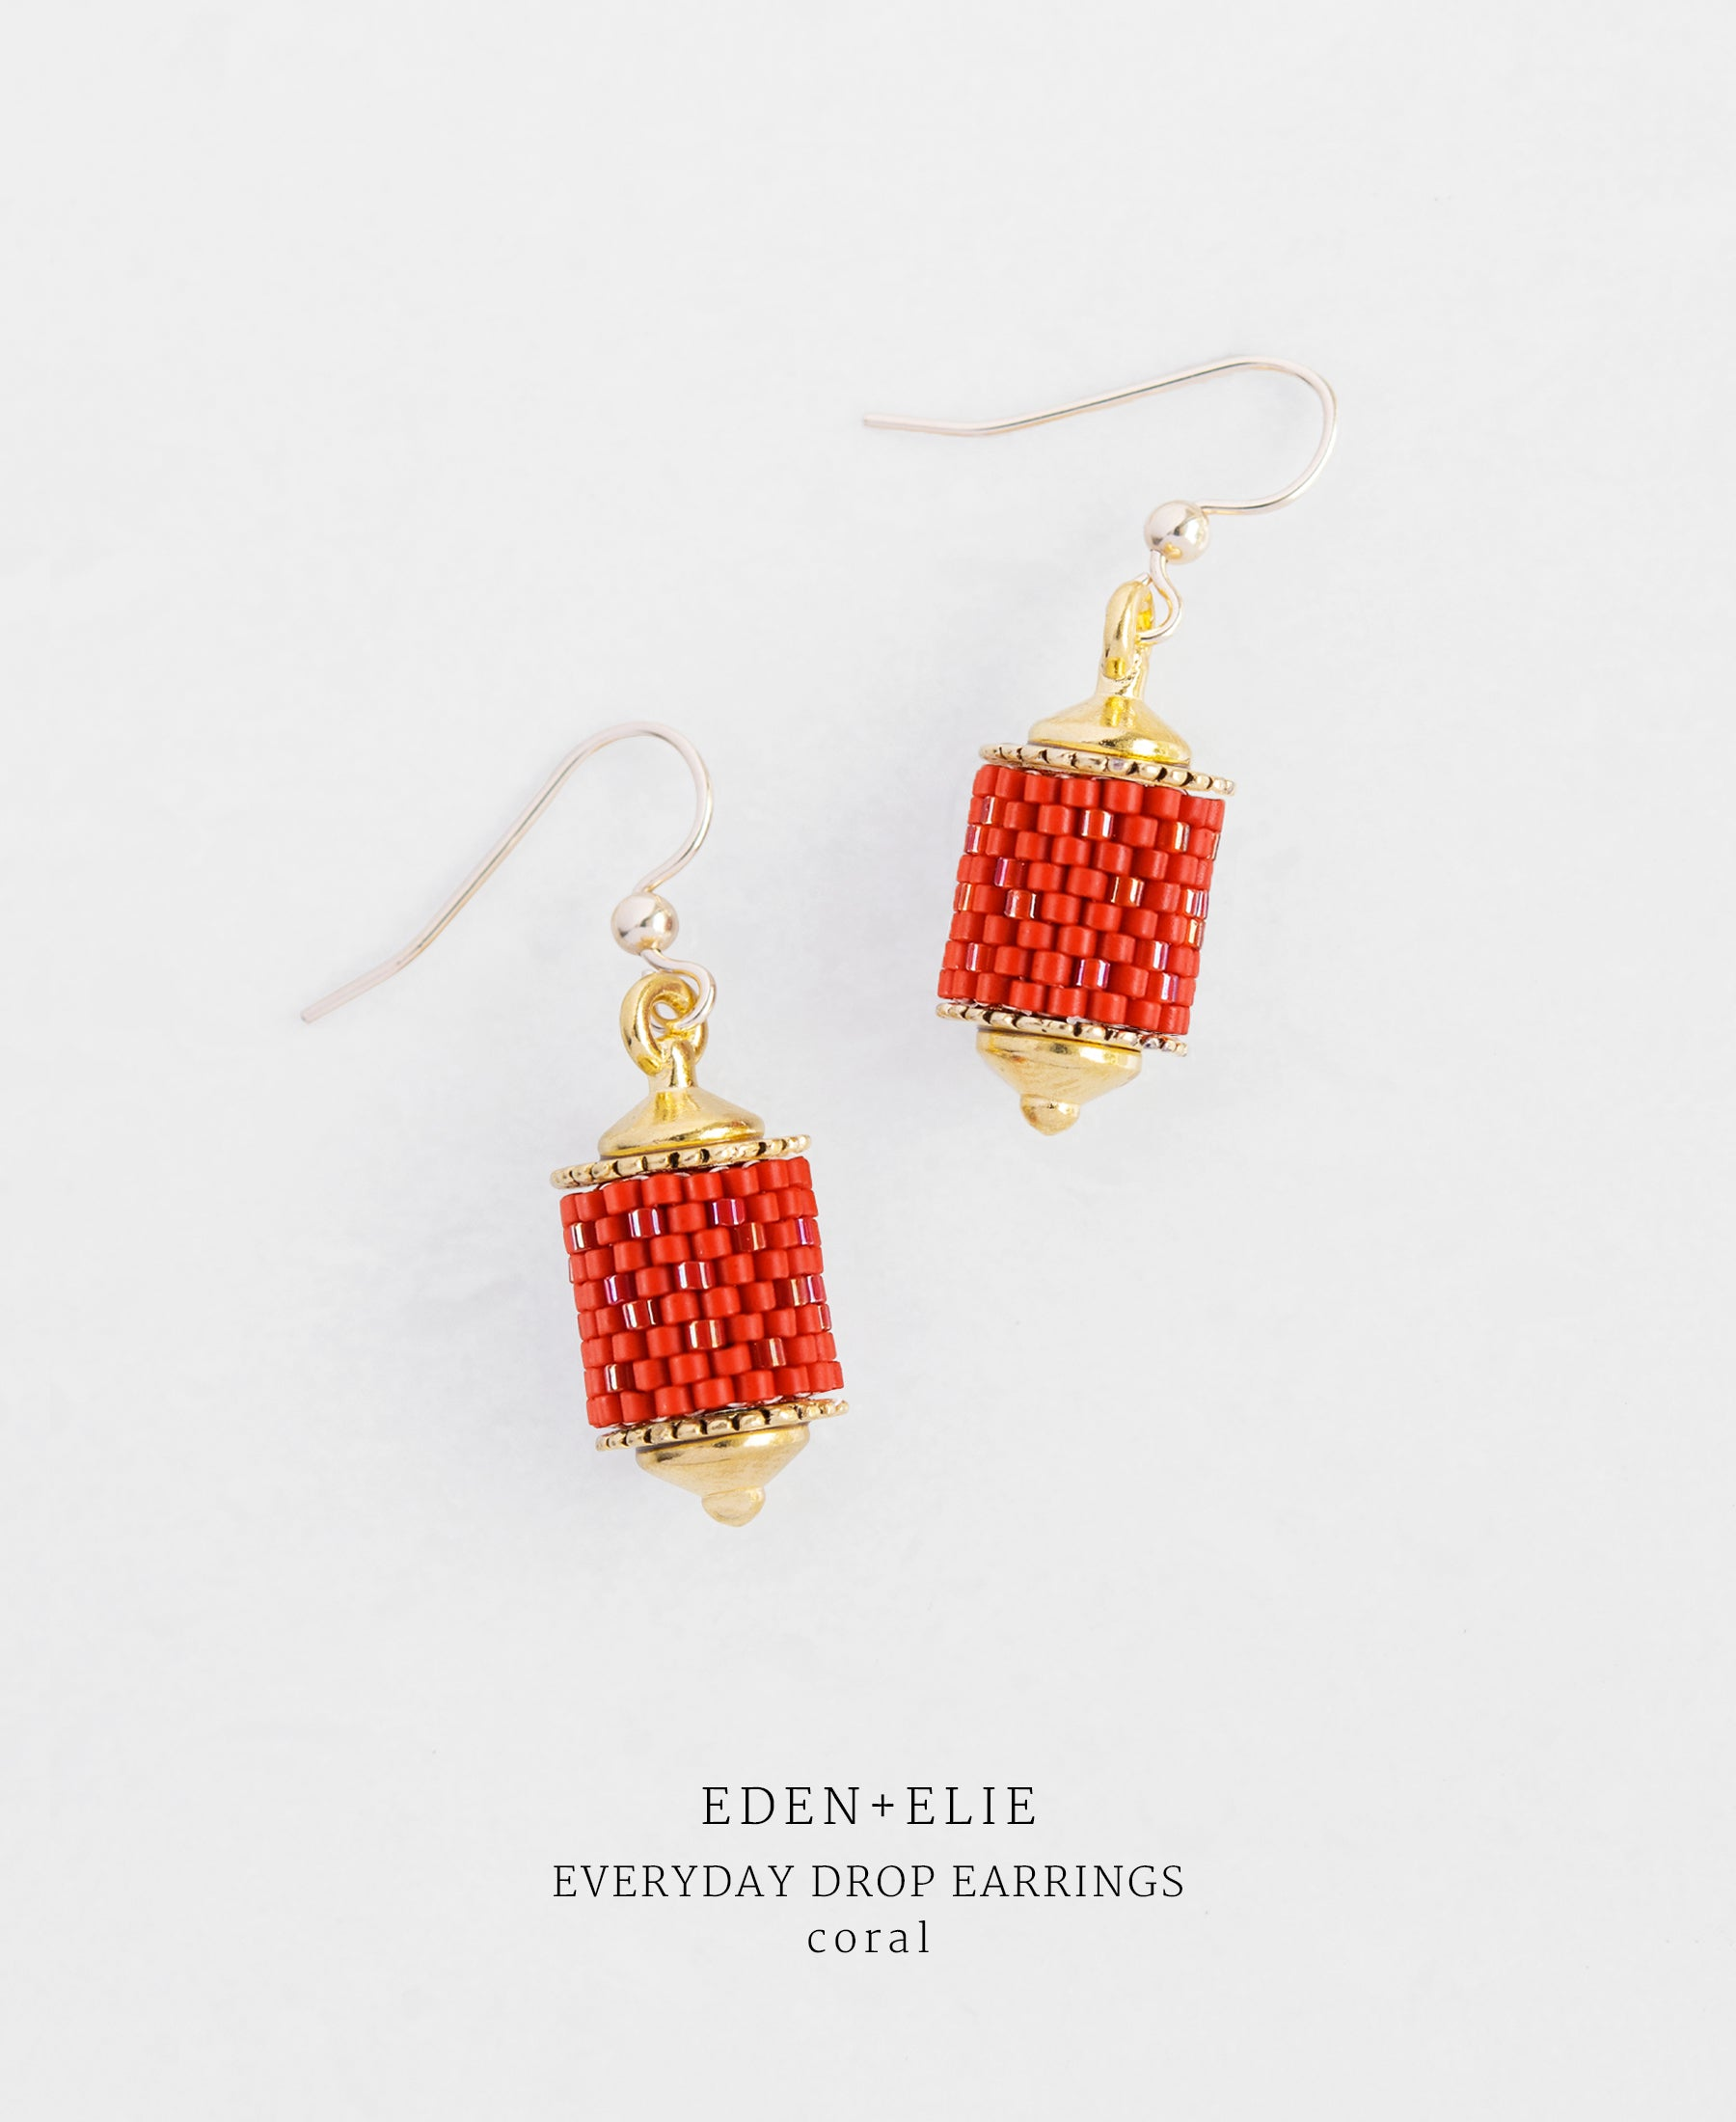 EDEN + ELIE Everyday drop earrings - coral red